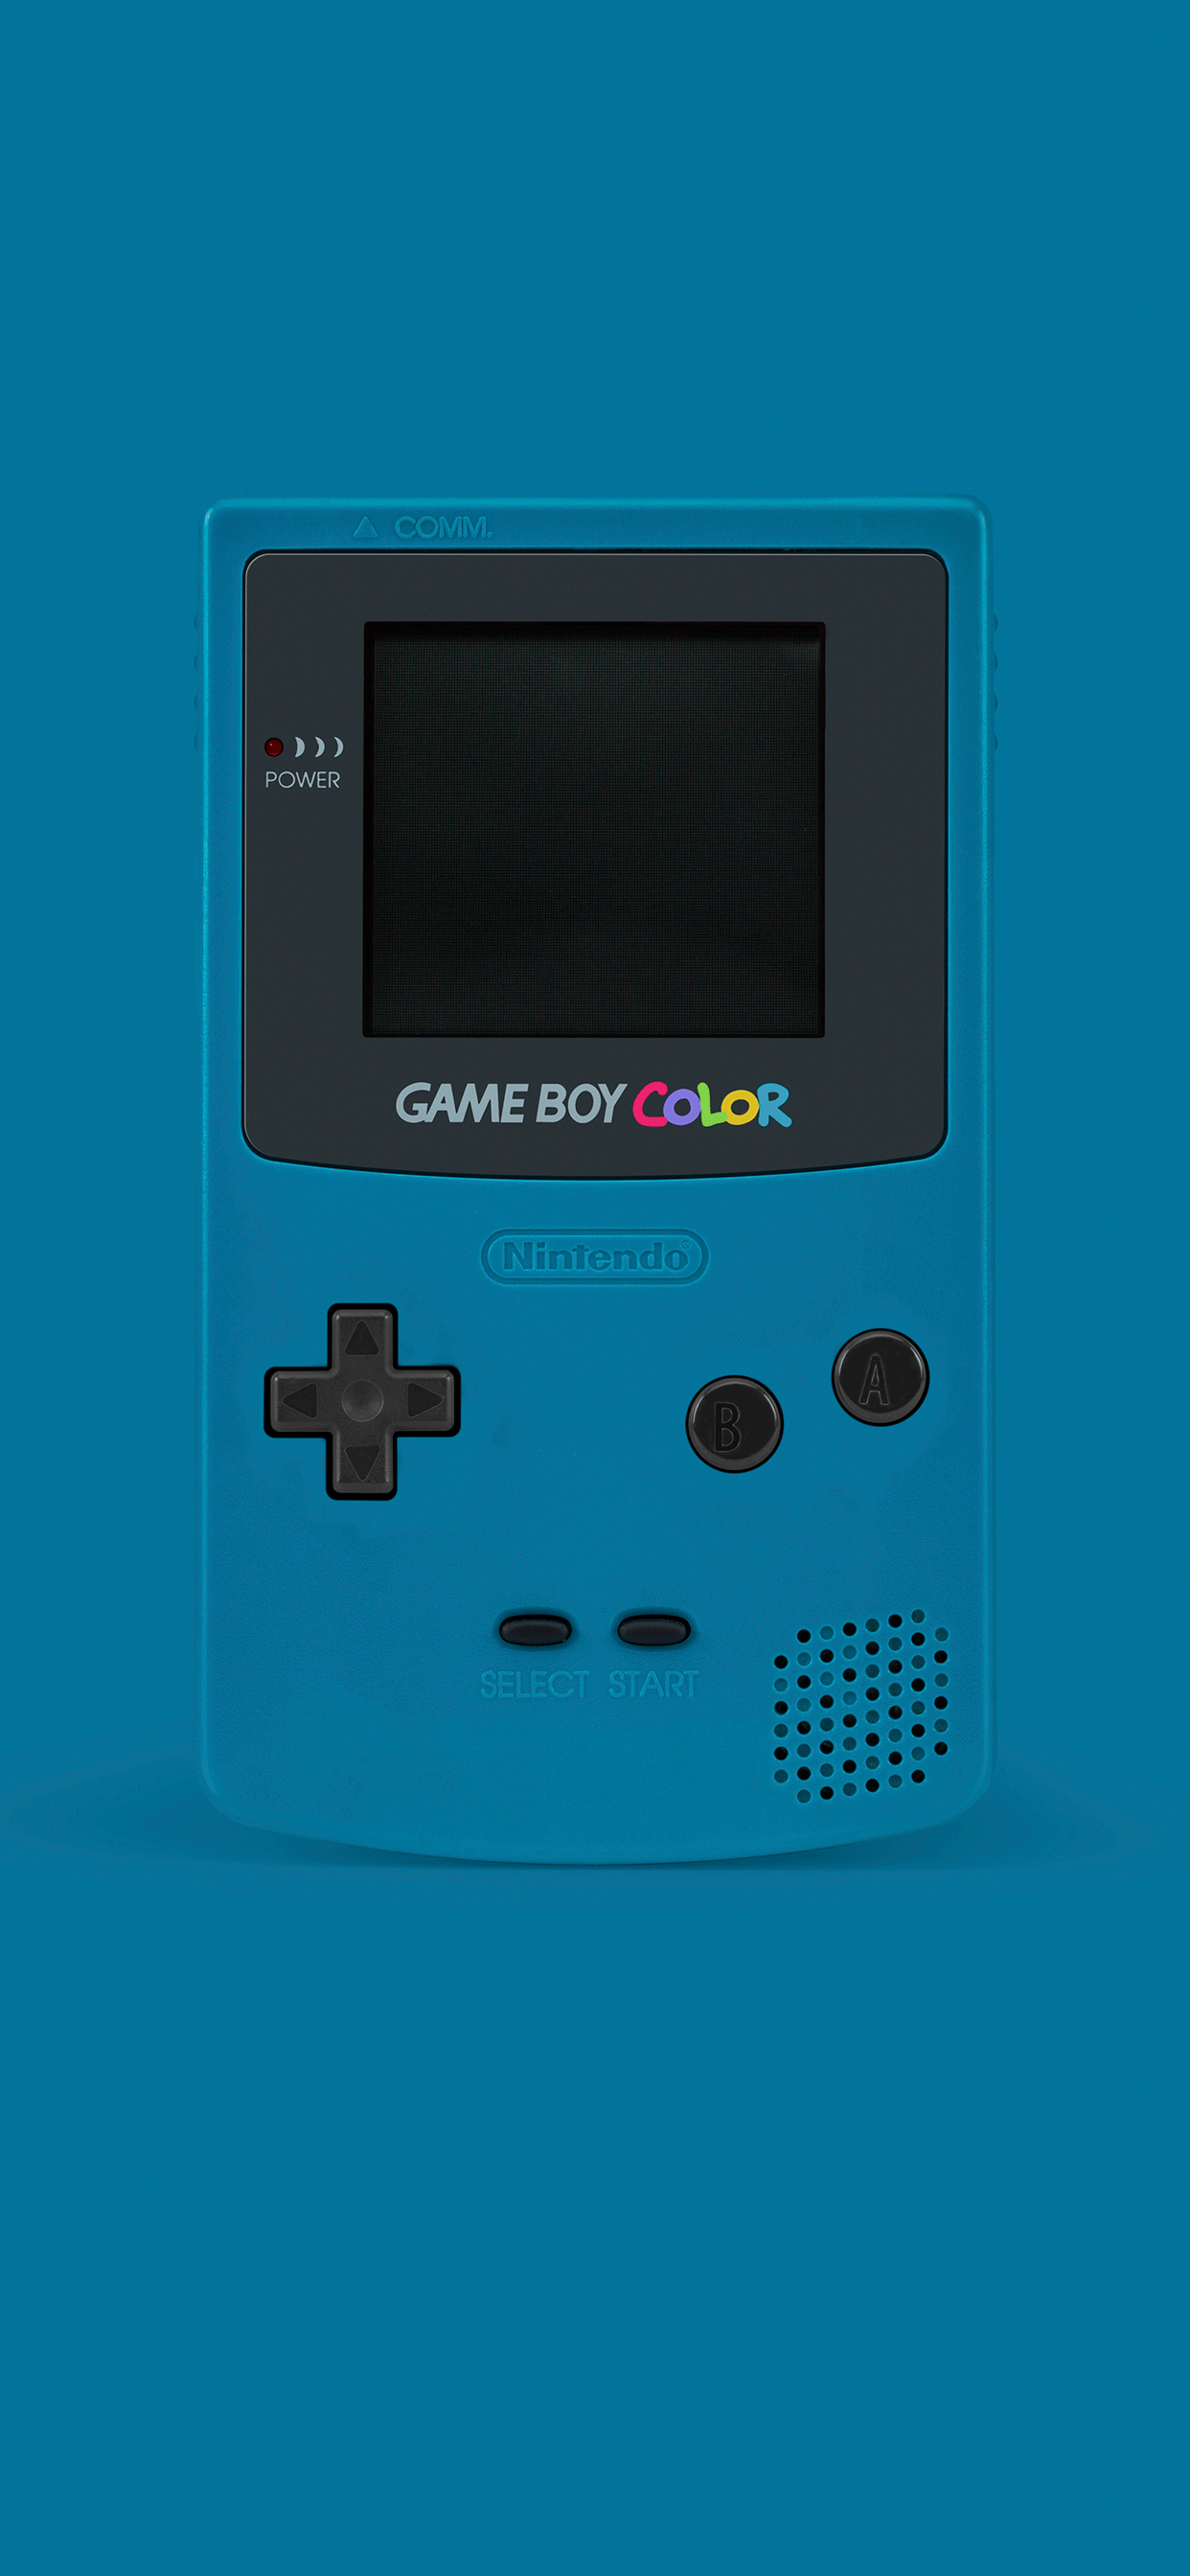 iPhone wallpapers game boy color turquoise Game Boy Color